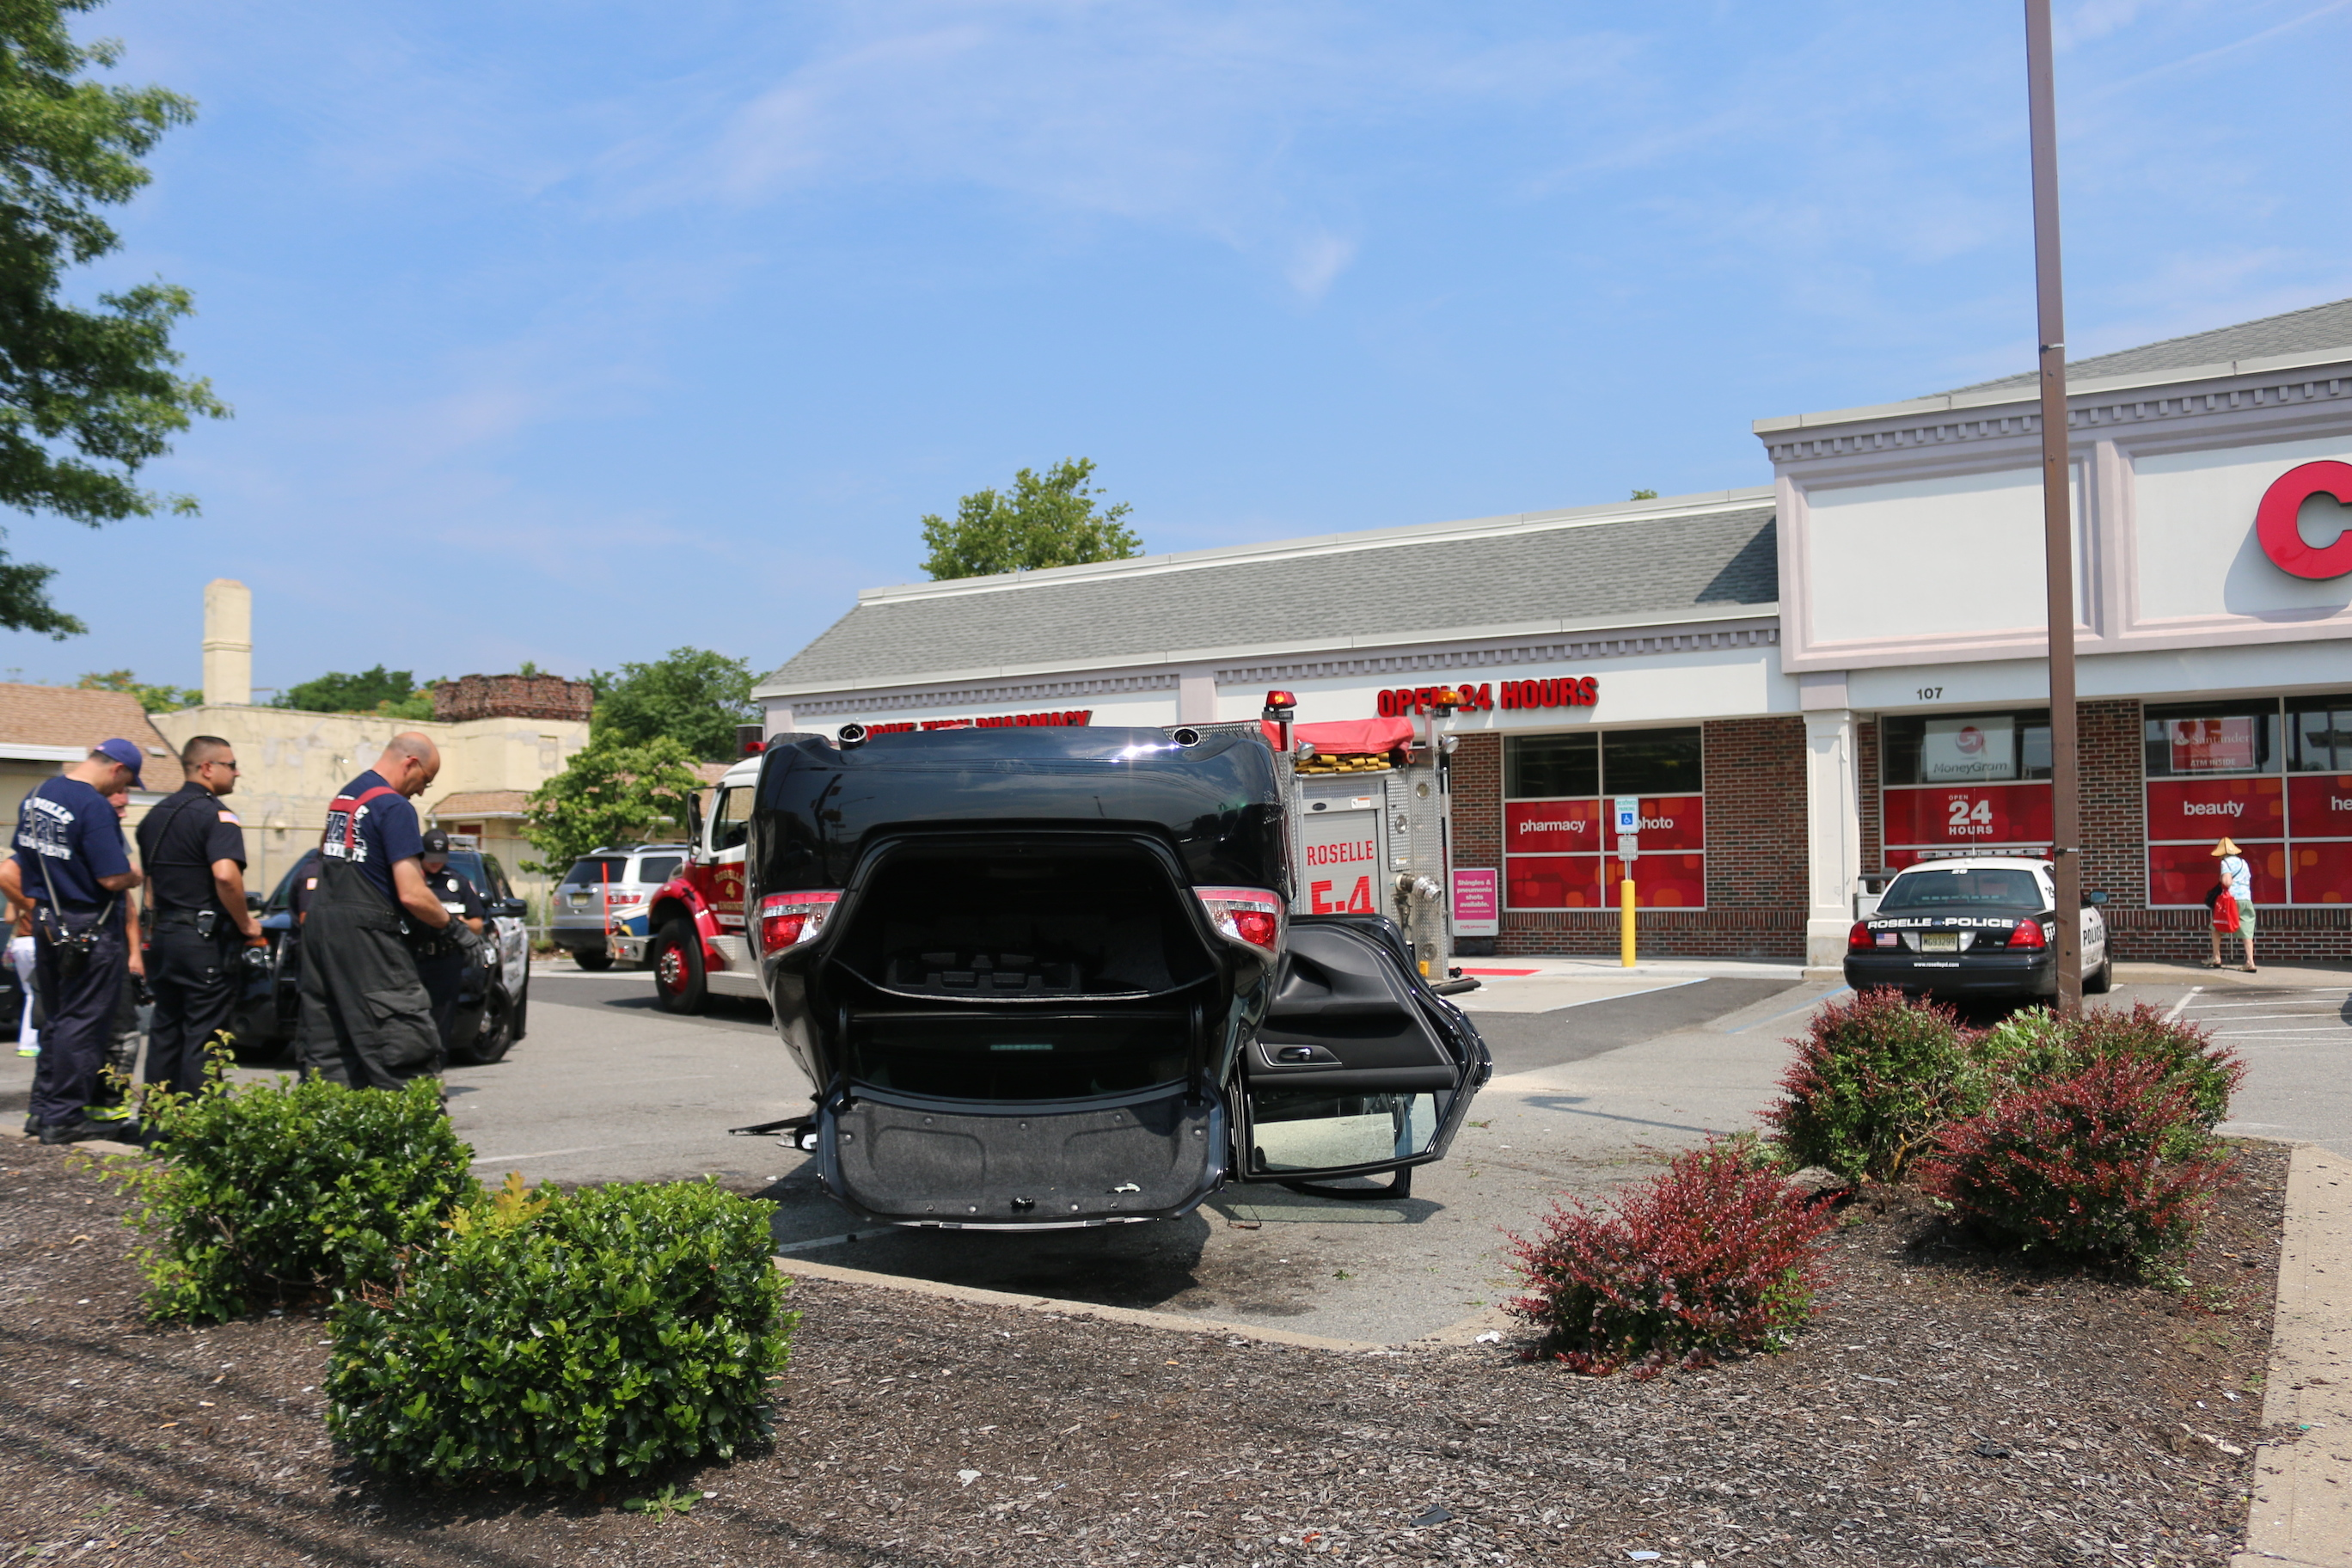 auto lands on roof in cvs parking lot clark nj news tapinto